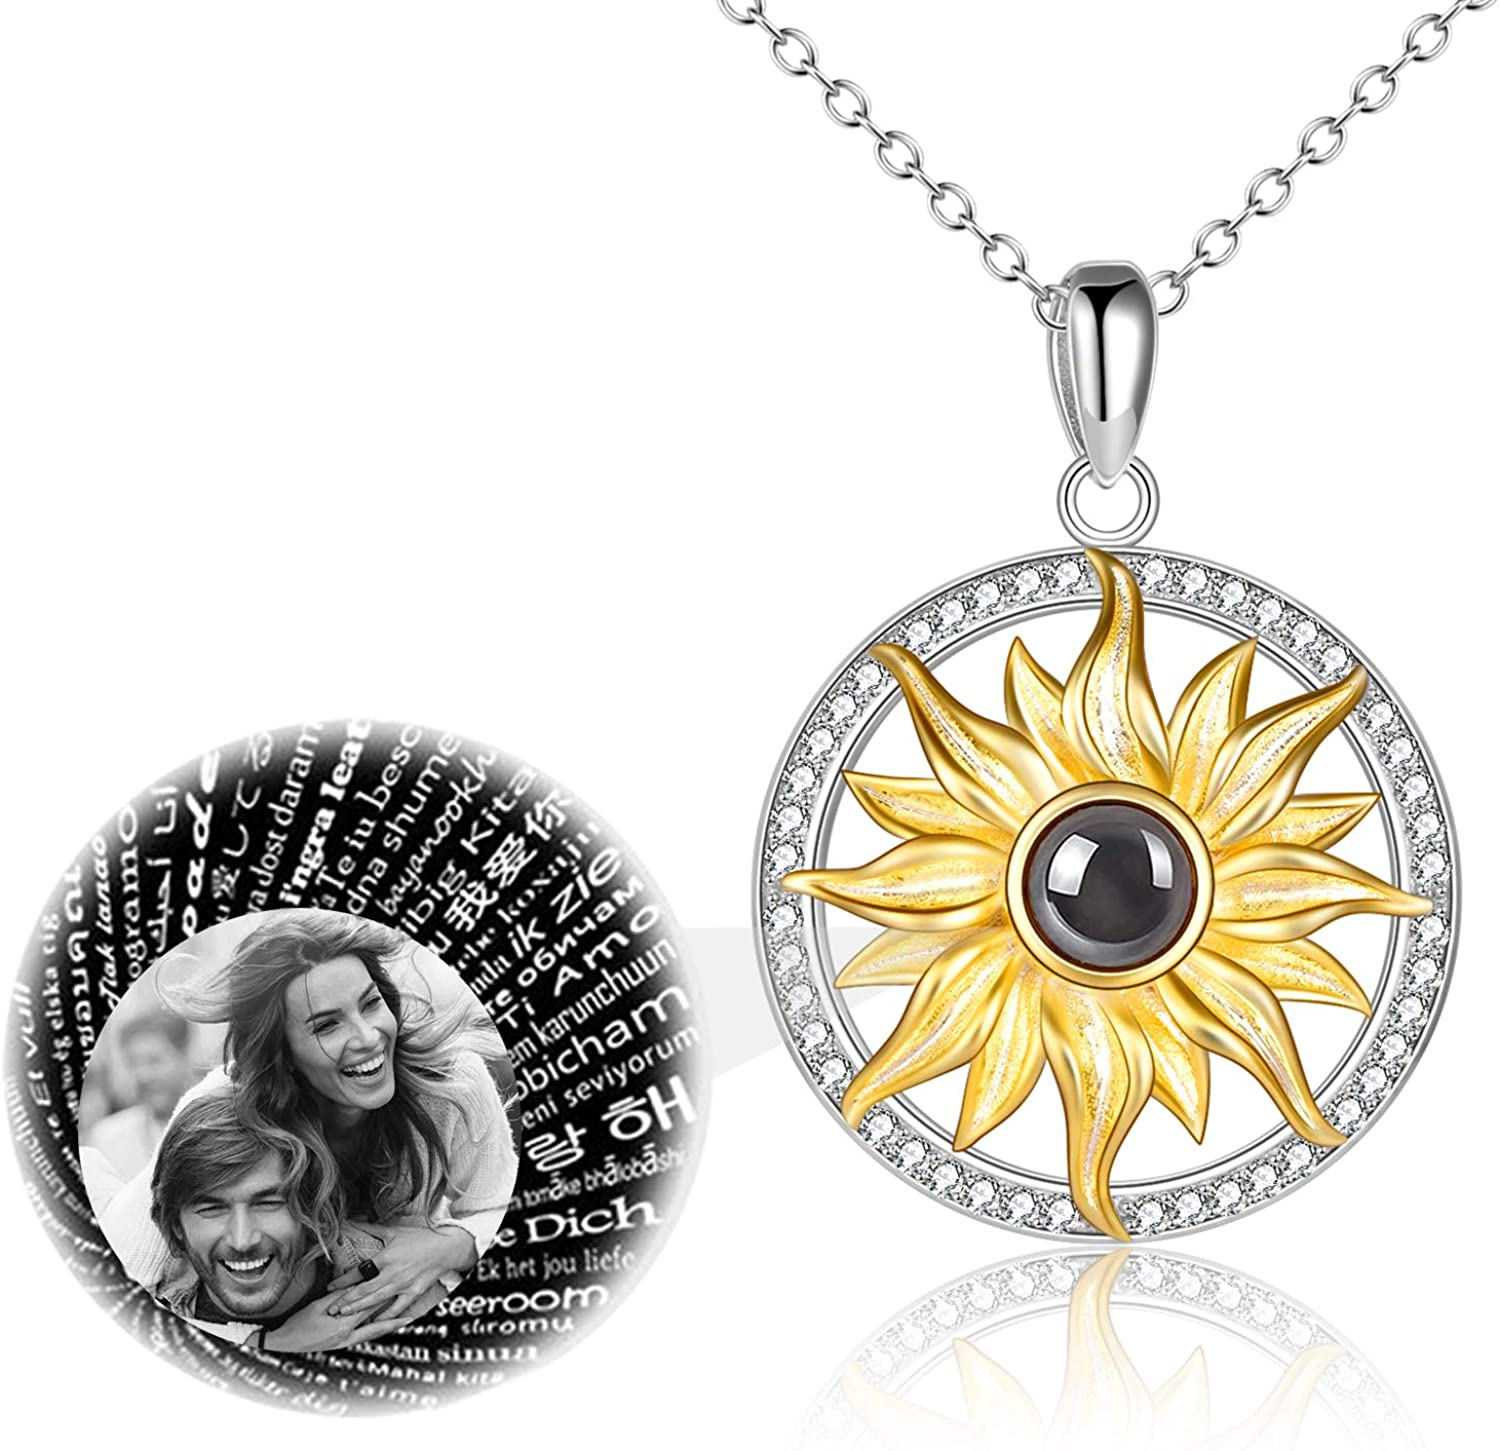 Personalized Sunflower Necklace Sterling Silver I Love You Necklace 100 Languages Memory Projection Necklace Jewelry Gifts